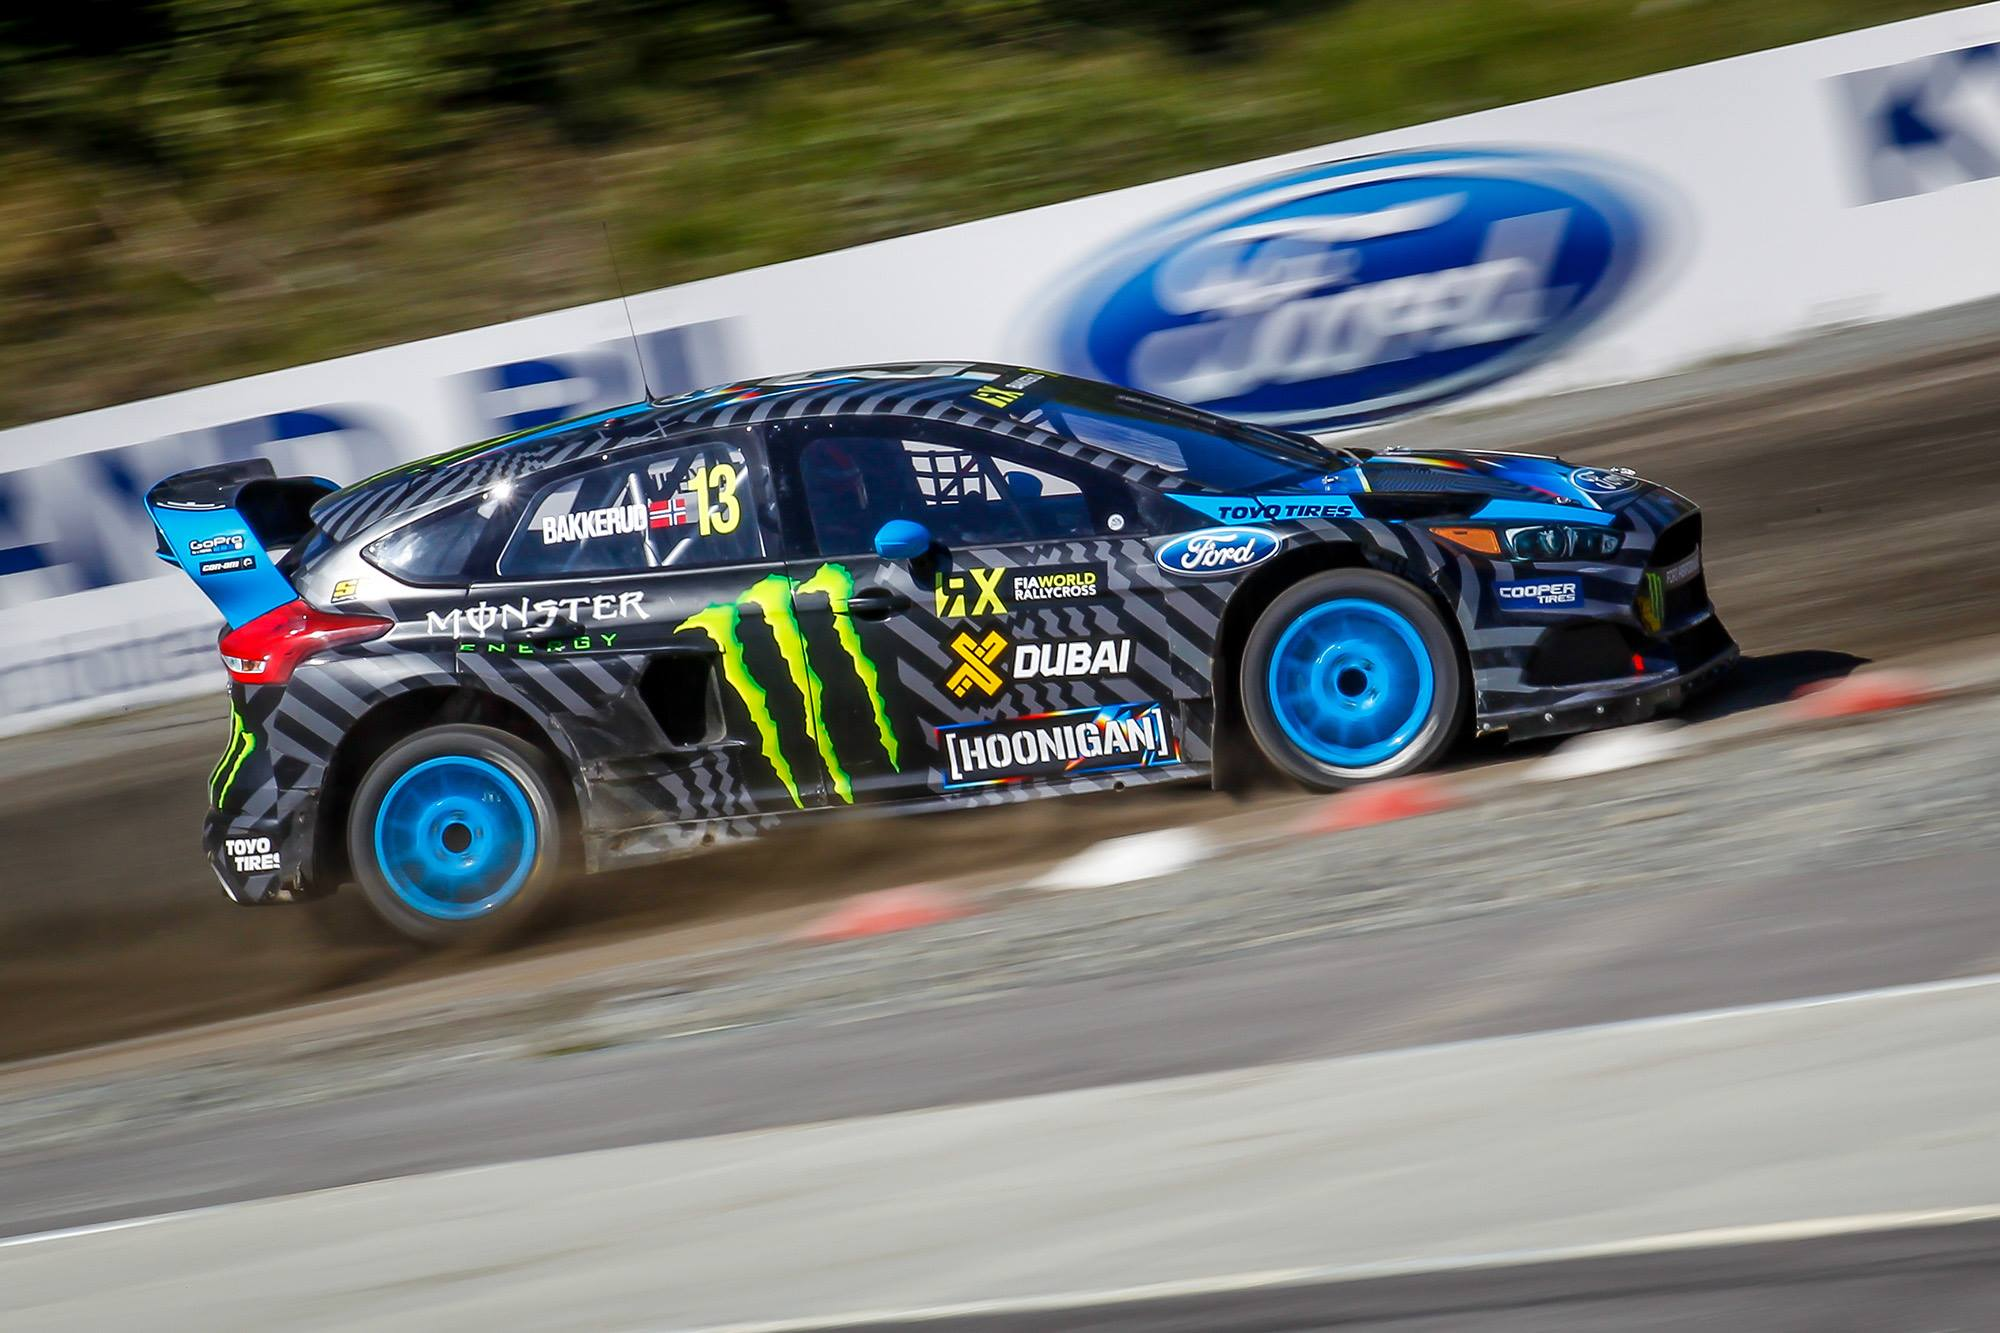 Andreas Bakkerud and his Focus RS RX Photo: focusforum